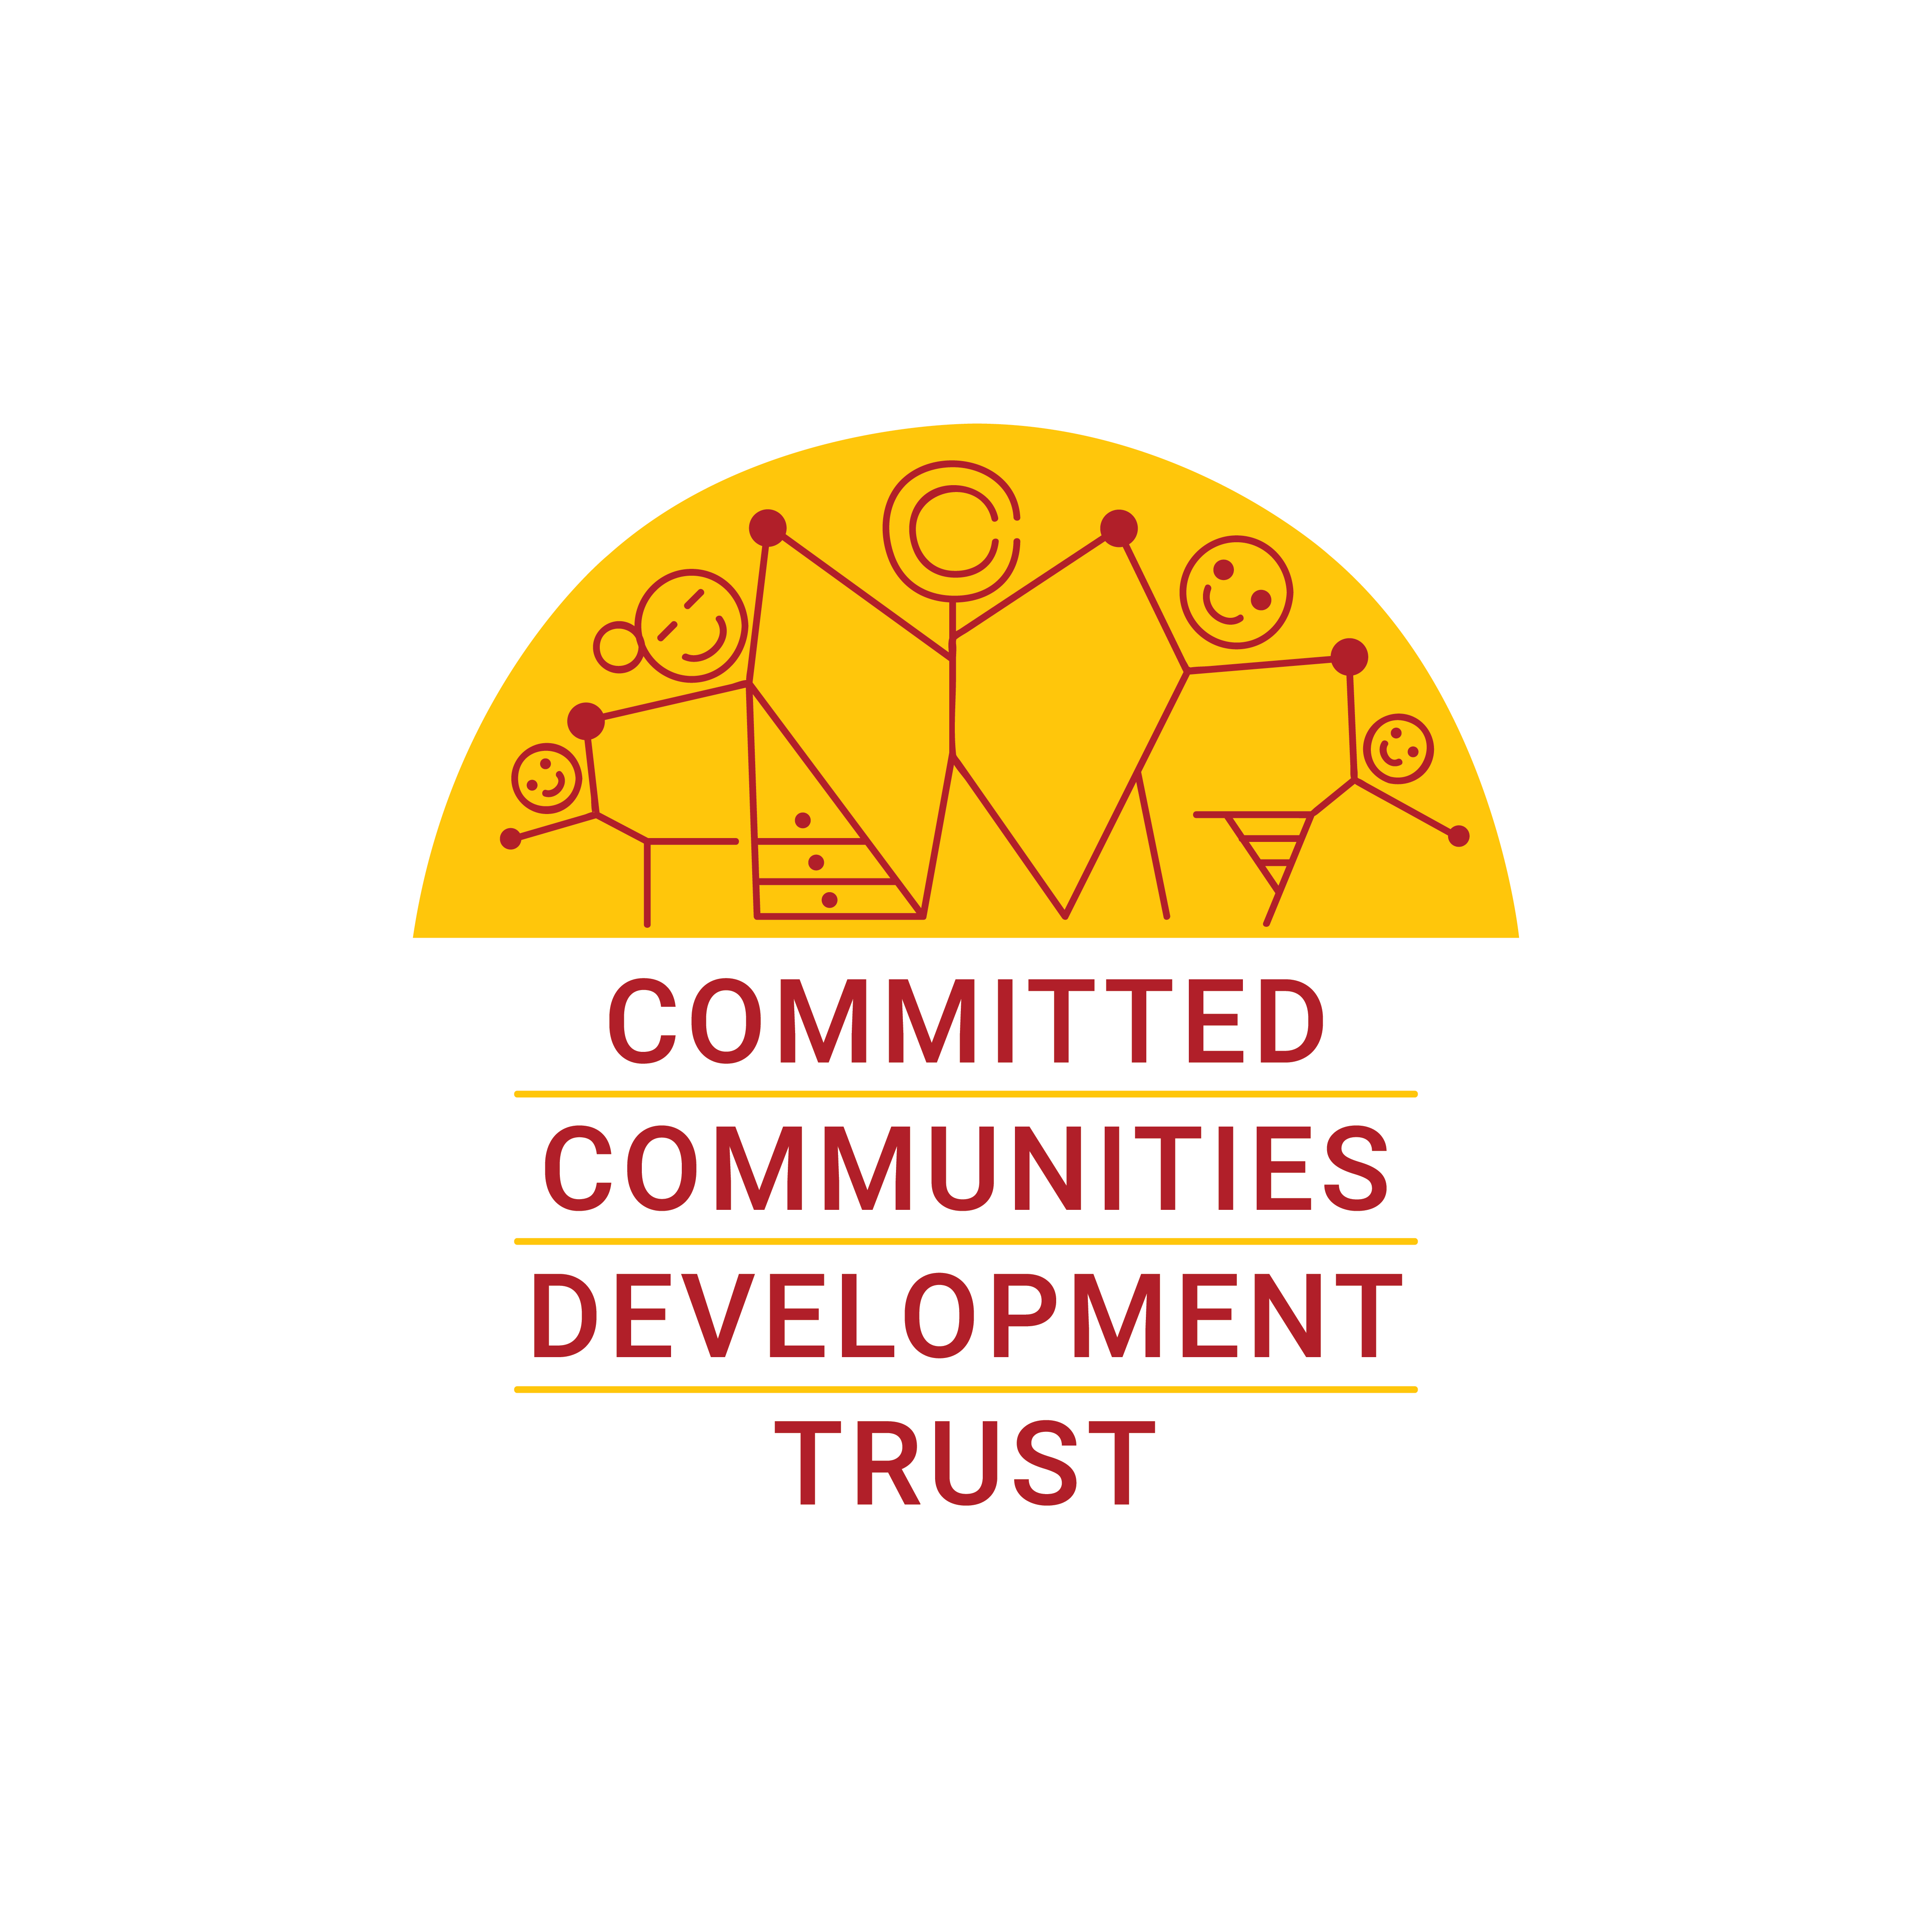 Committed Communities Development Trust